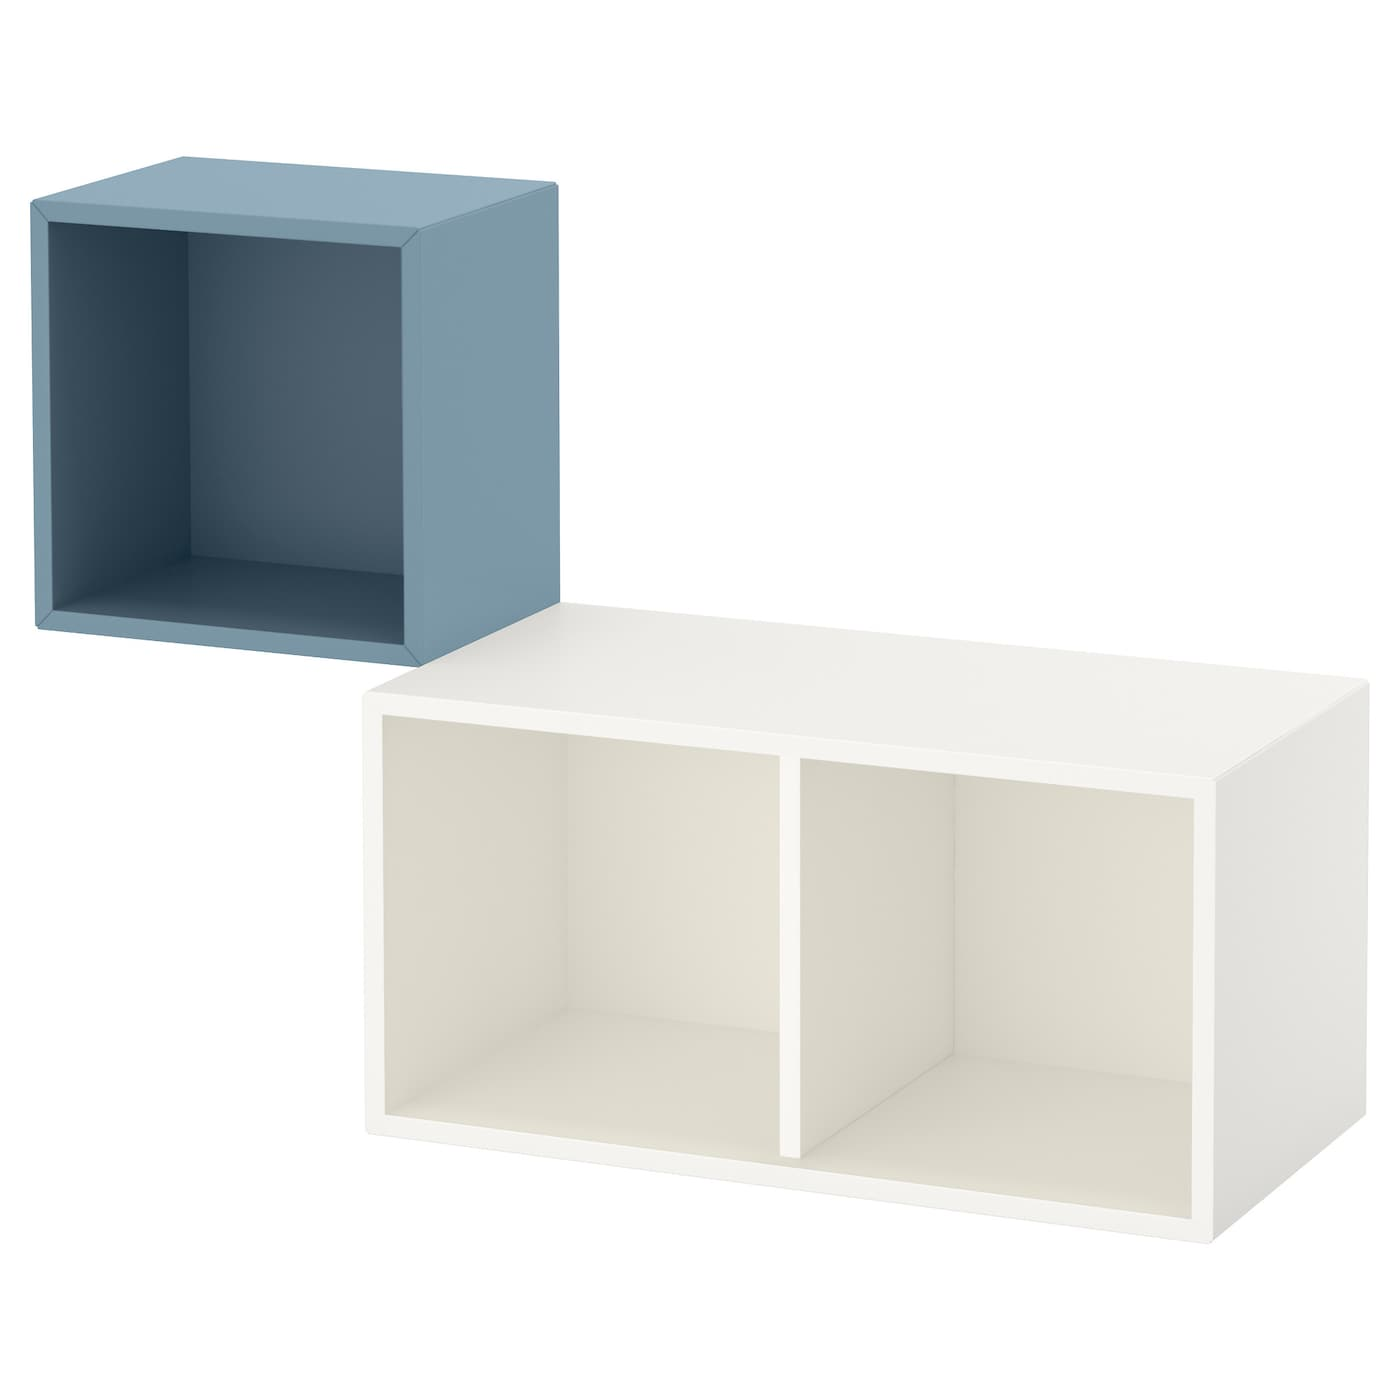 Eket wall mounted cabinet combination light blue white 105x35x70 cm ikea - Etagere murale cube ikea ...